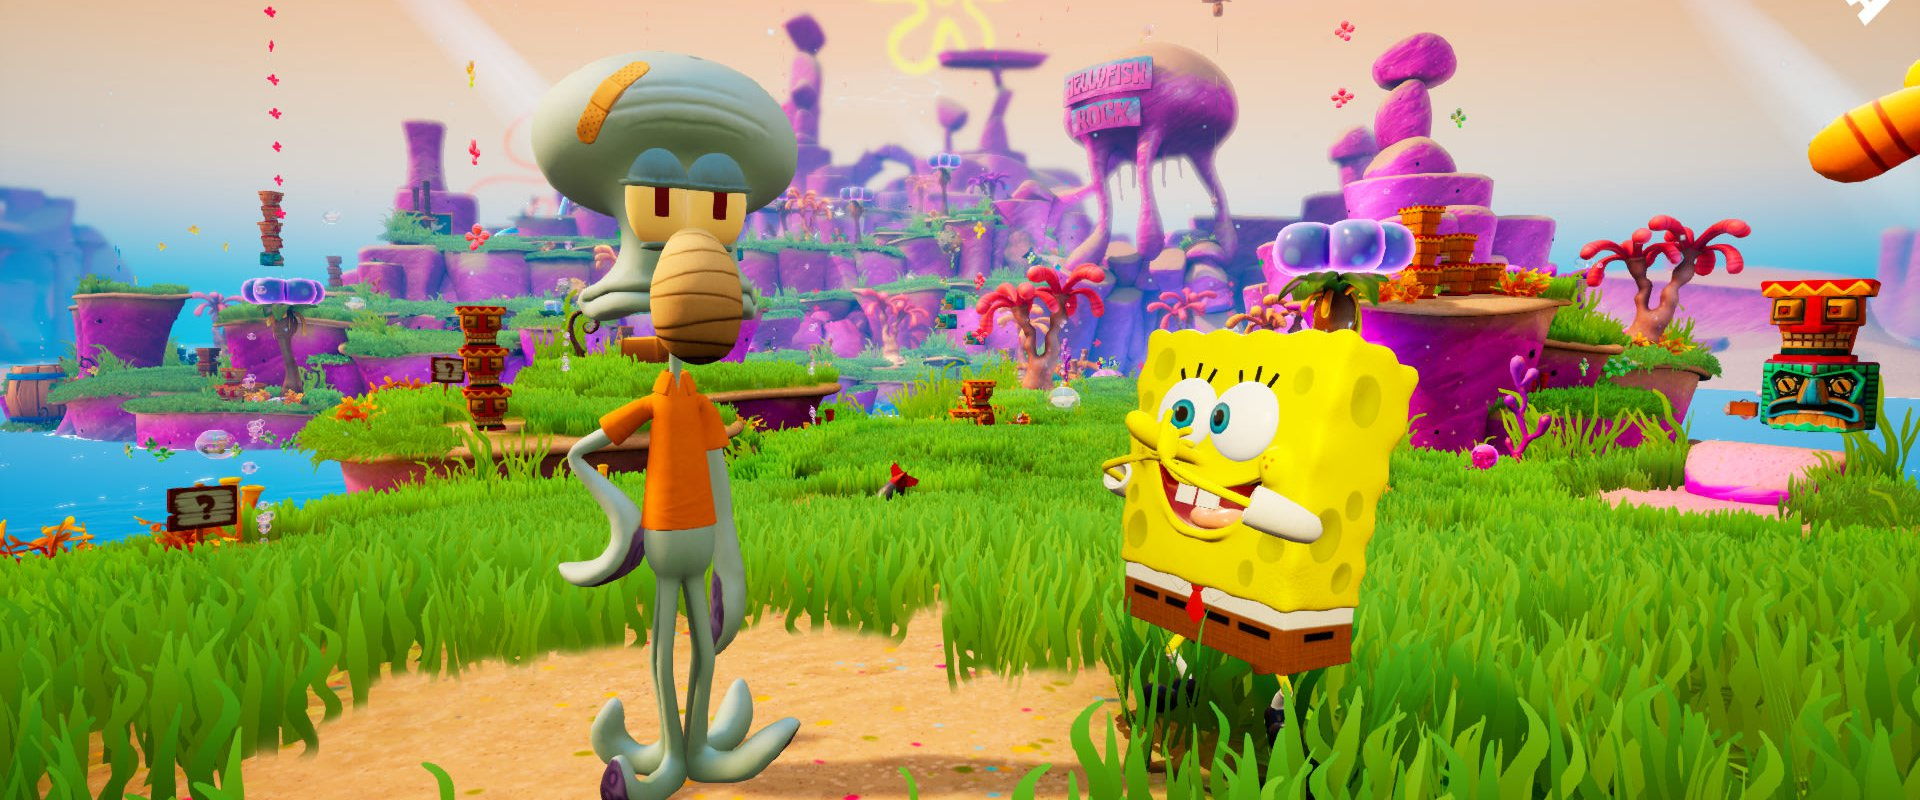 SpongeBob SquarePants: Battle for Bikini Bottom – Rehydrated Spongebob and Squidward